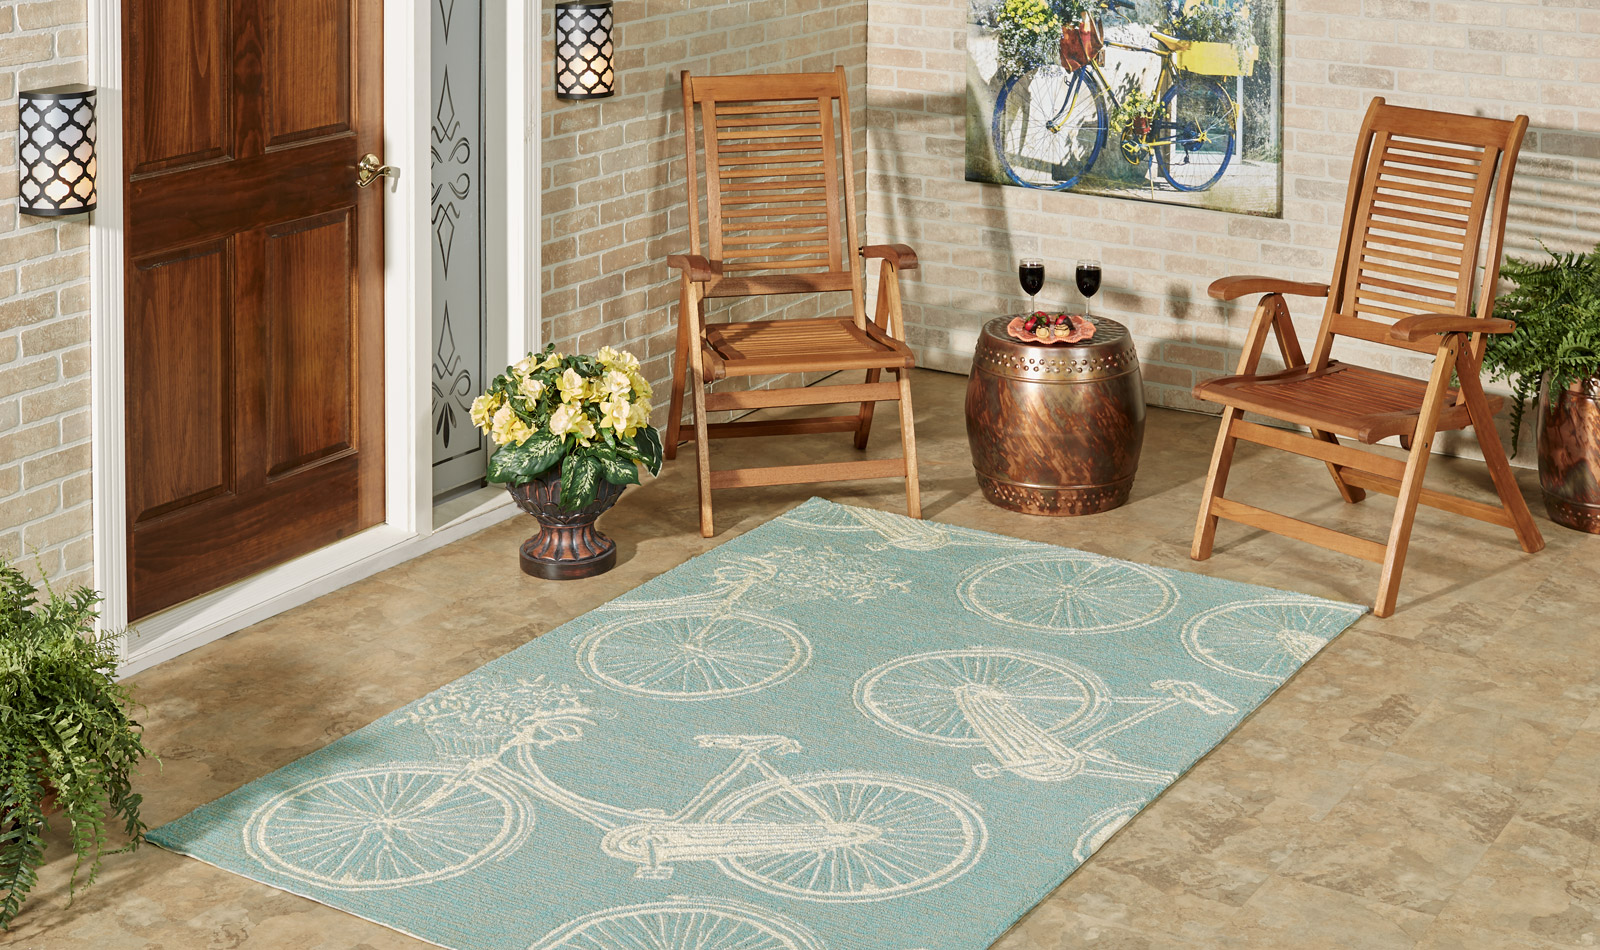 Get the Look - Vintage Bicycle Blue Patio Entry